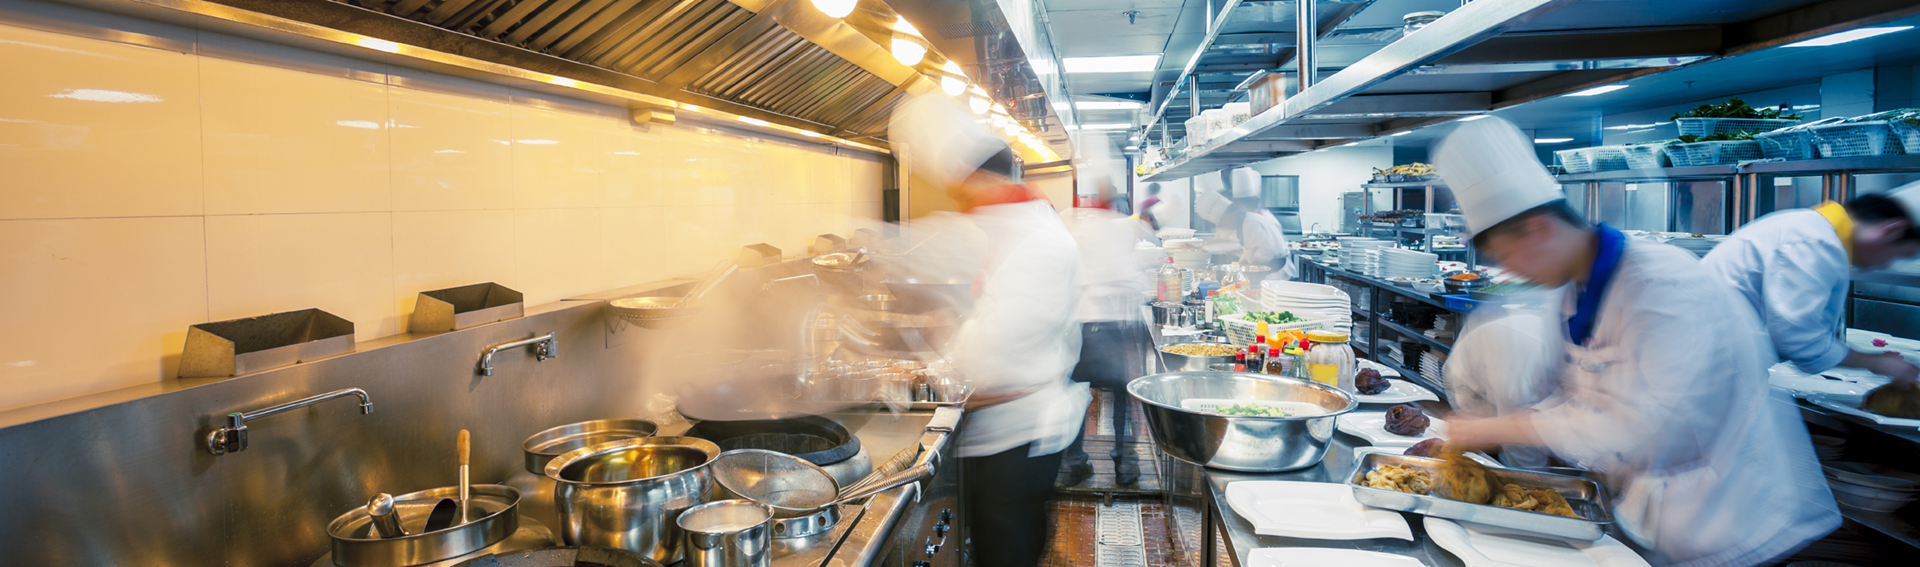 UNDERSTANDING COVID19 IN THE FOOD INDUSTRY